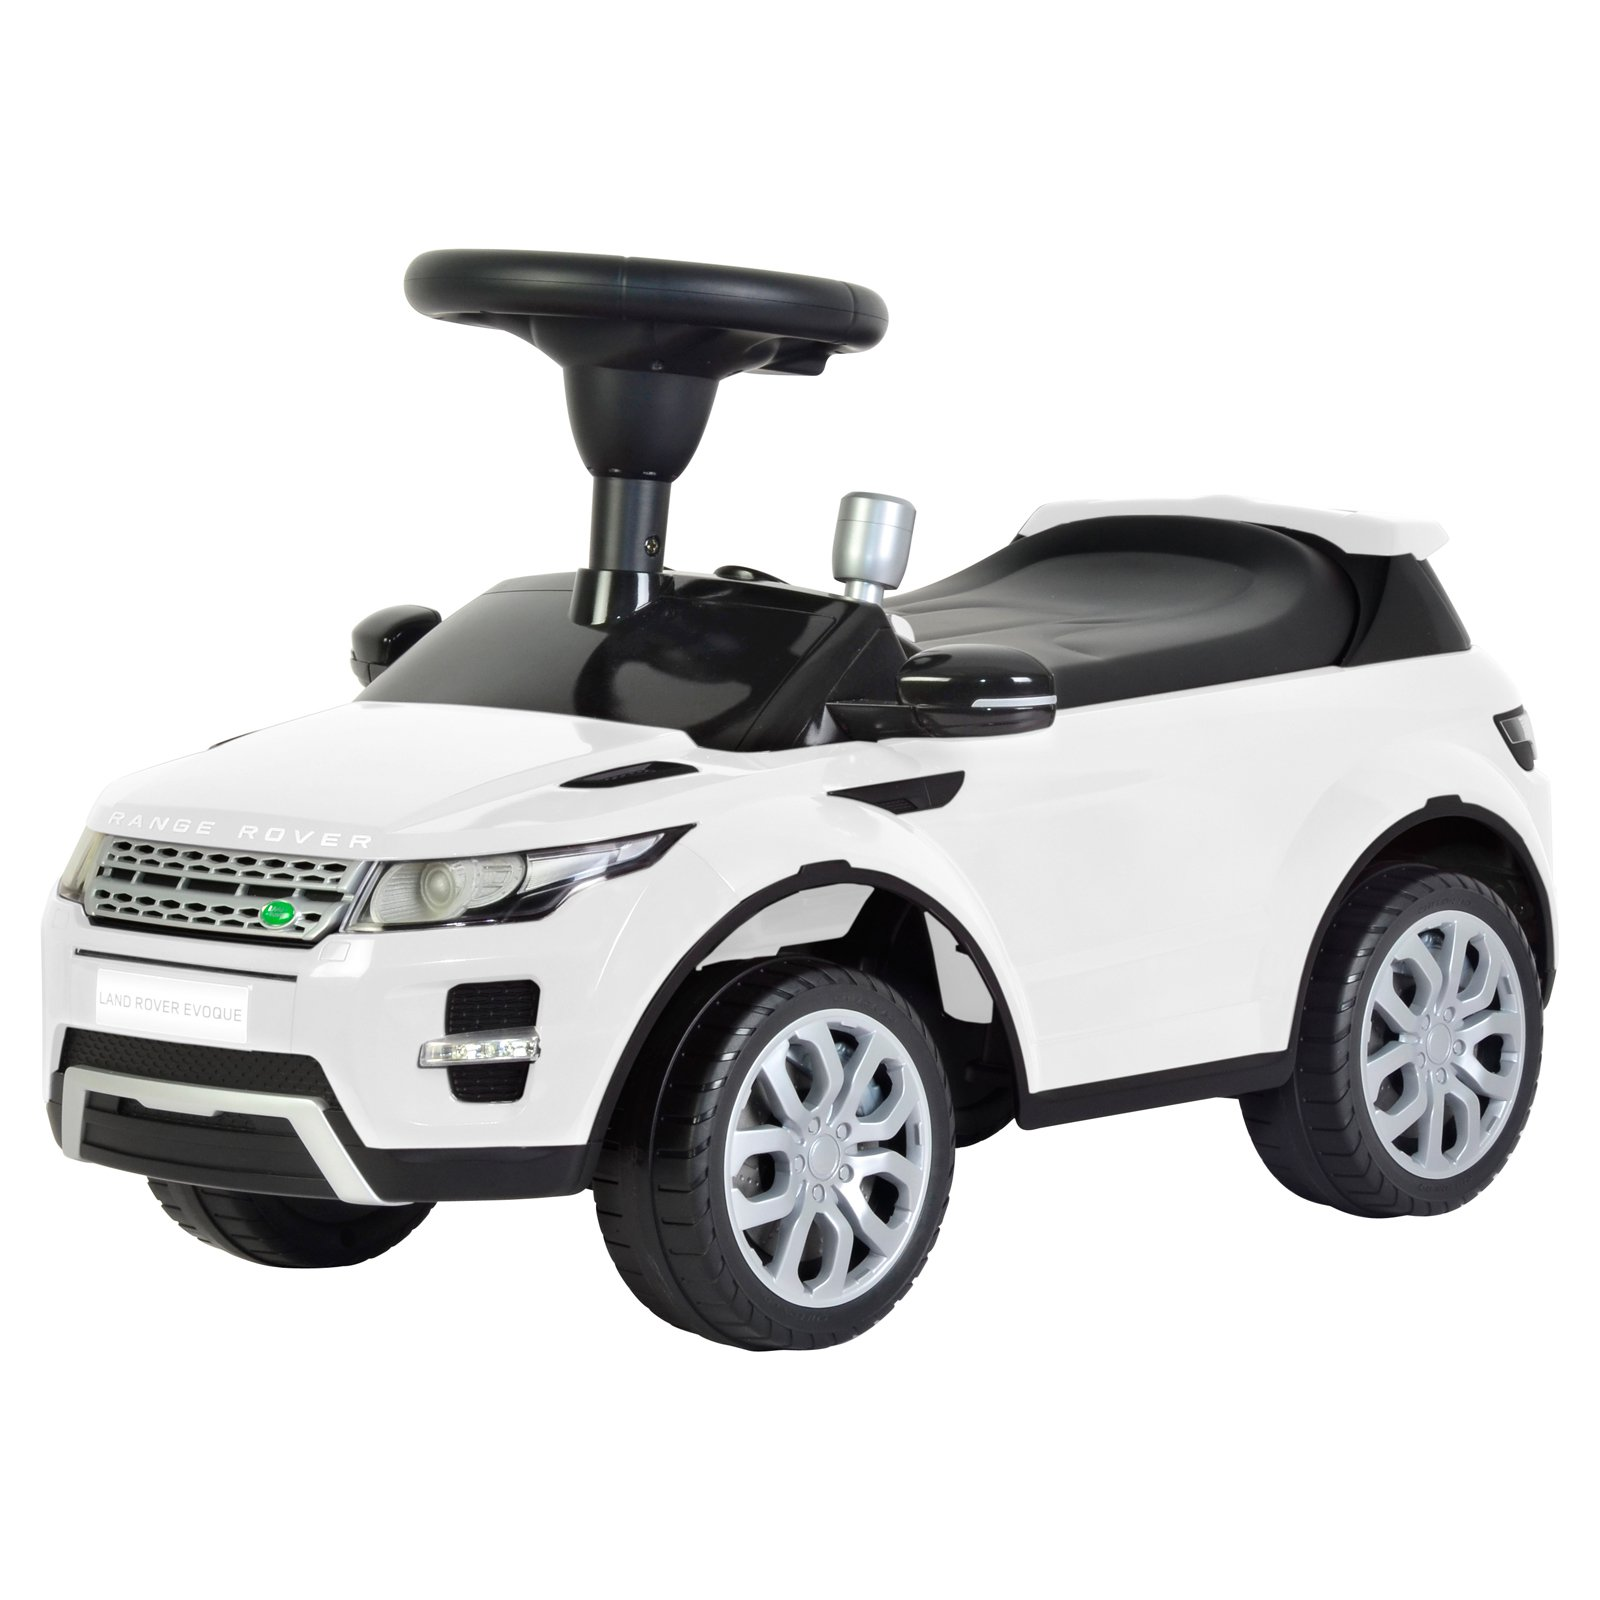 Ride-Ons Land Rover Range Rover Evoque with Sound Riding Push Toy